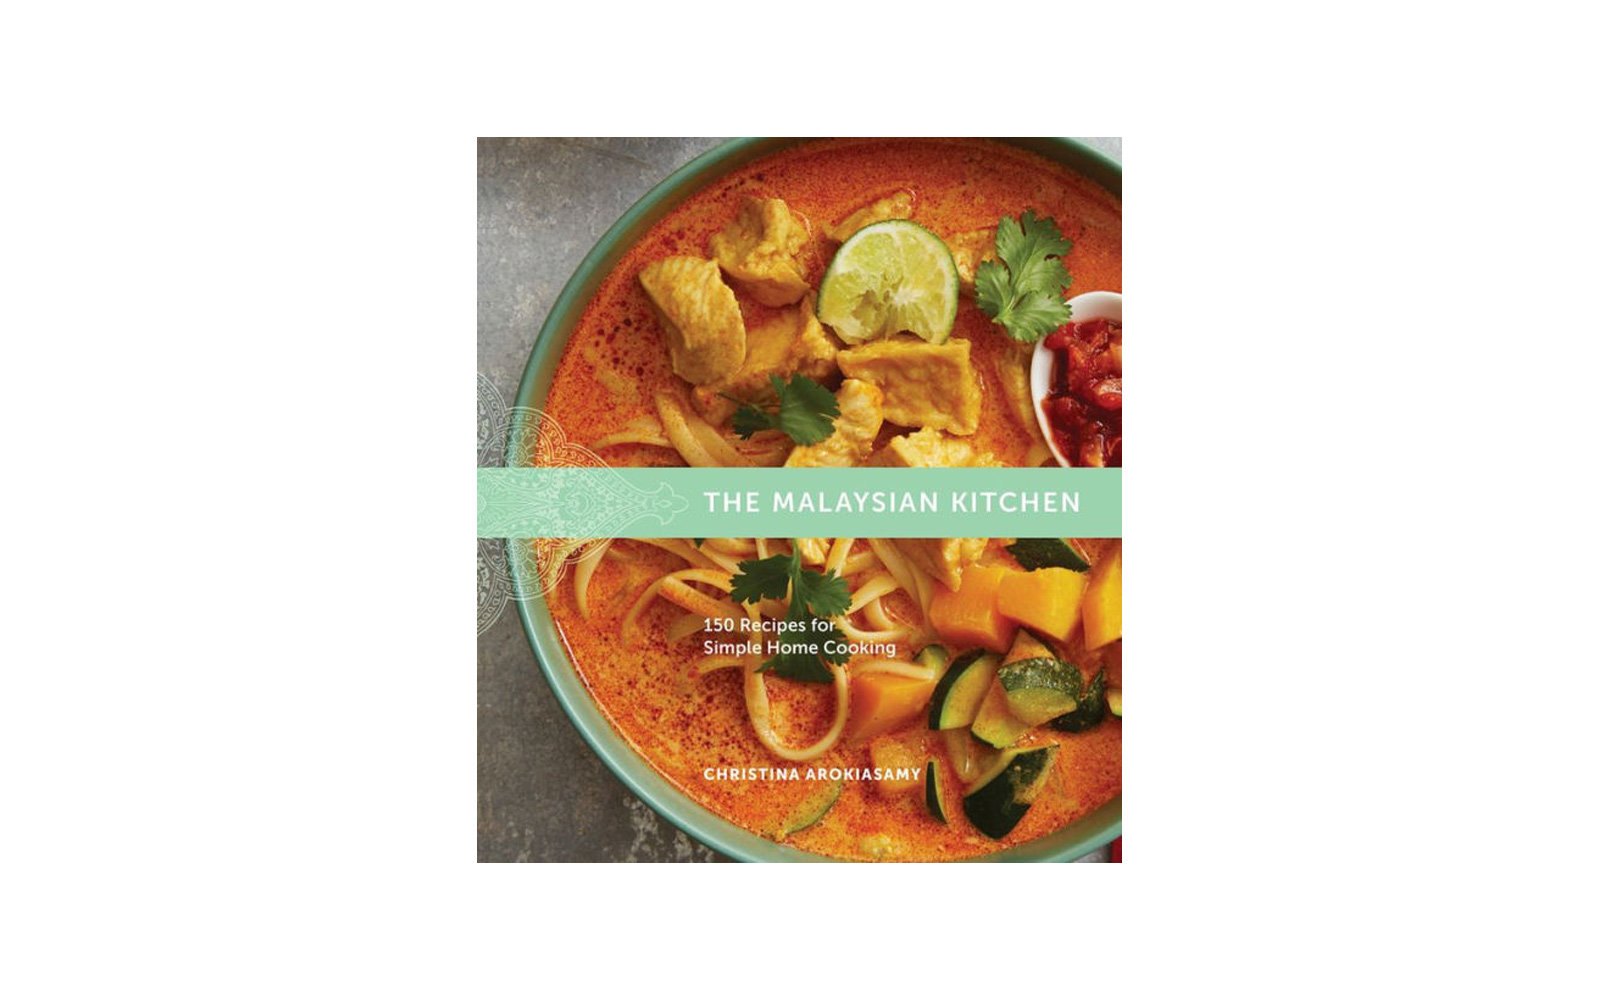 The Malaysian Kitchen: 150 Recipes for Simple Home Cooking